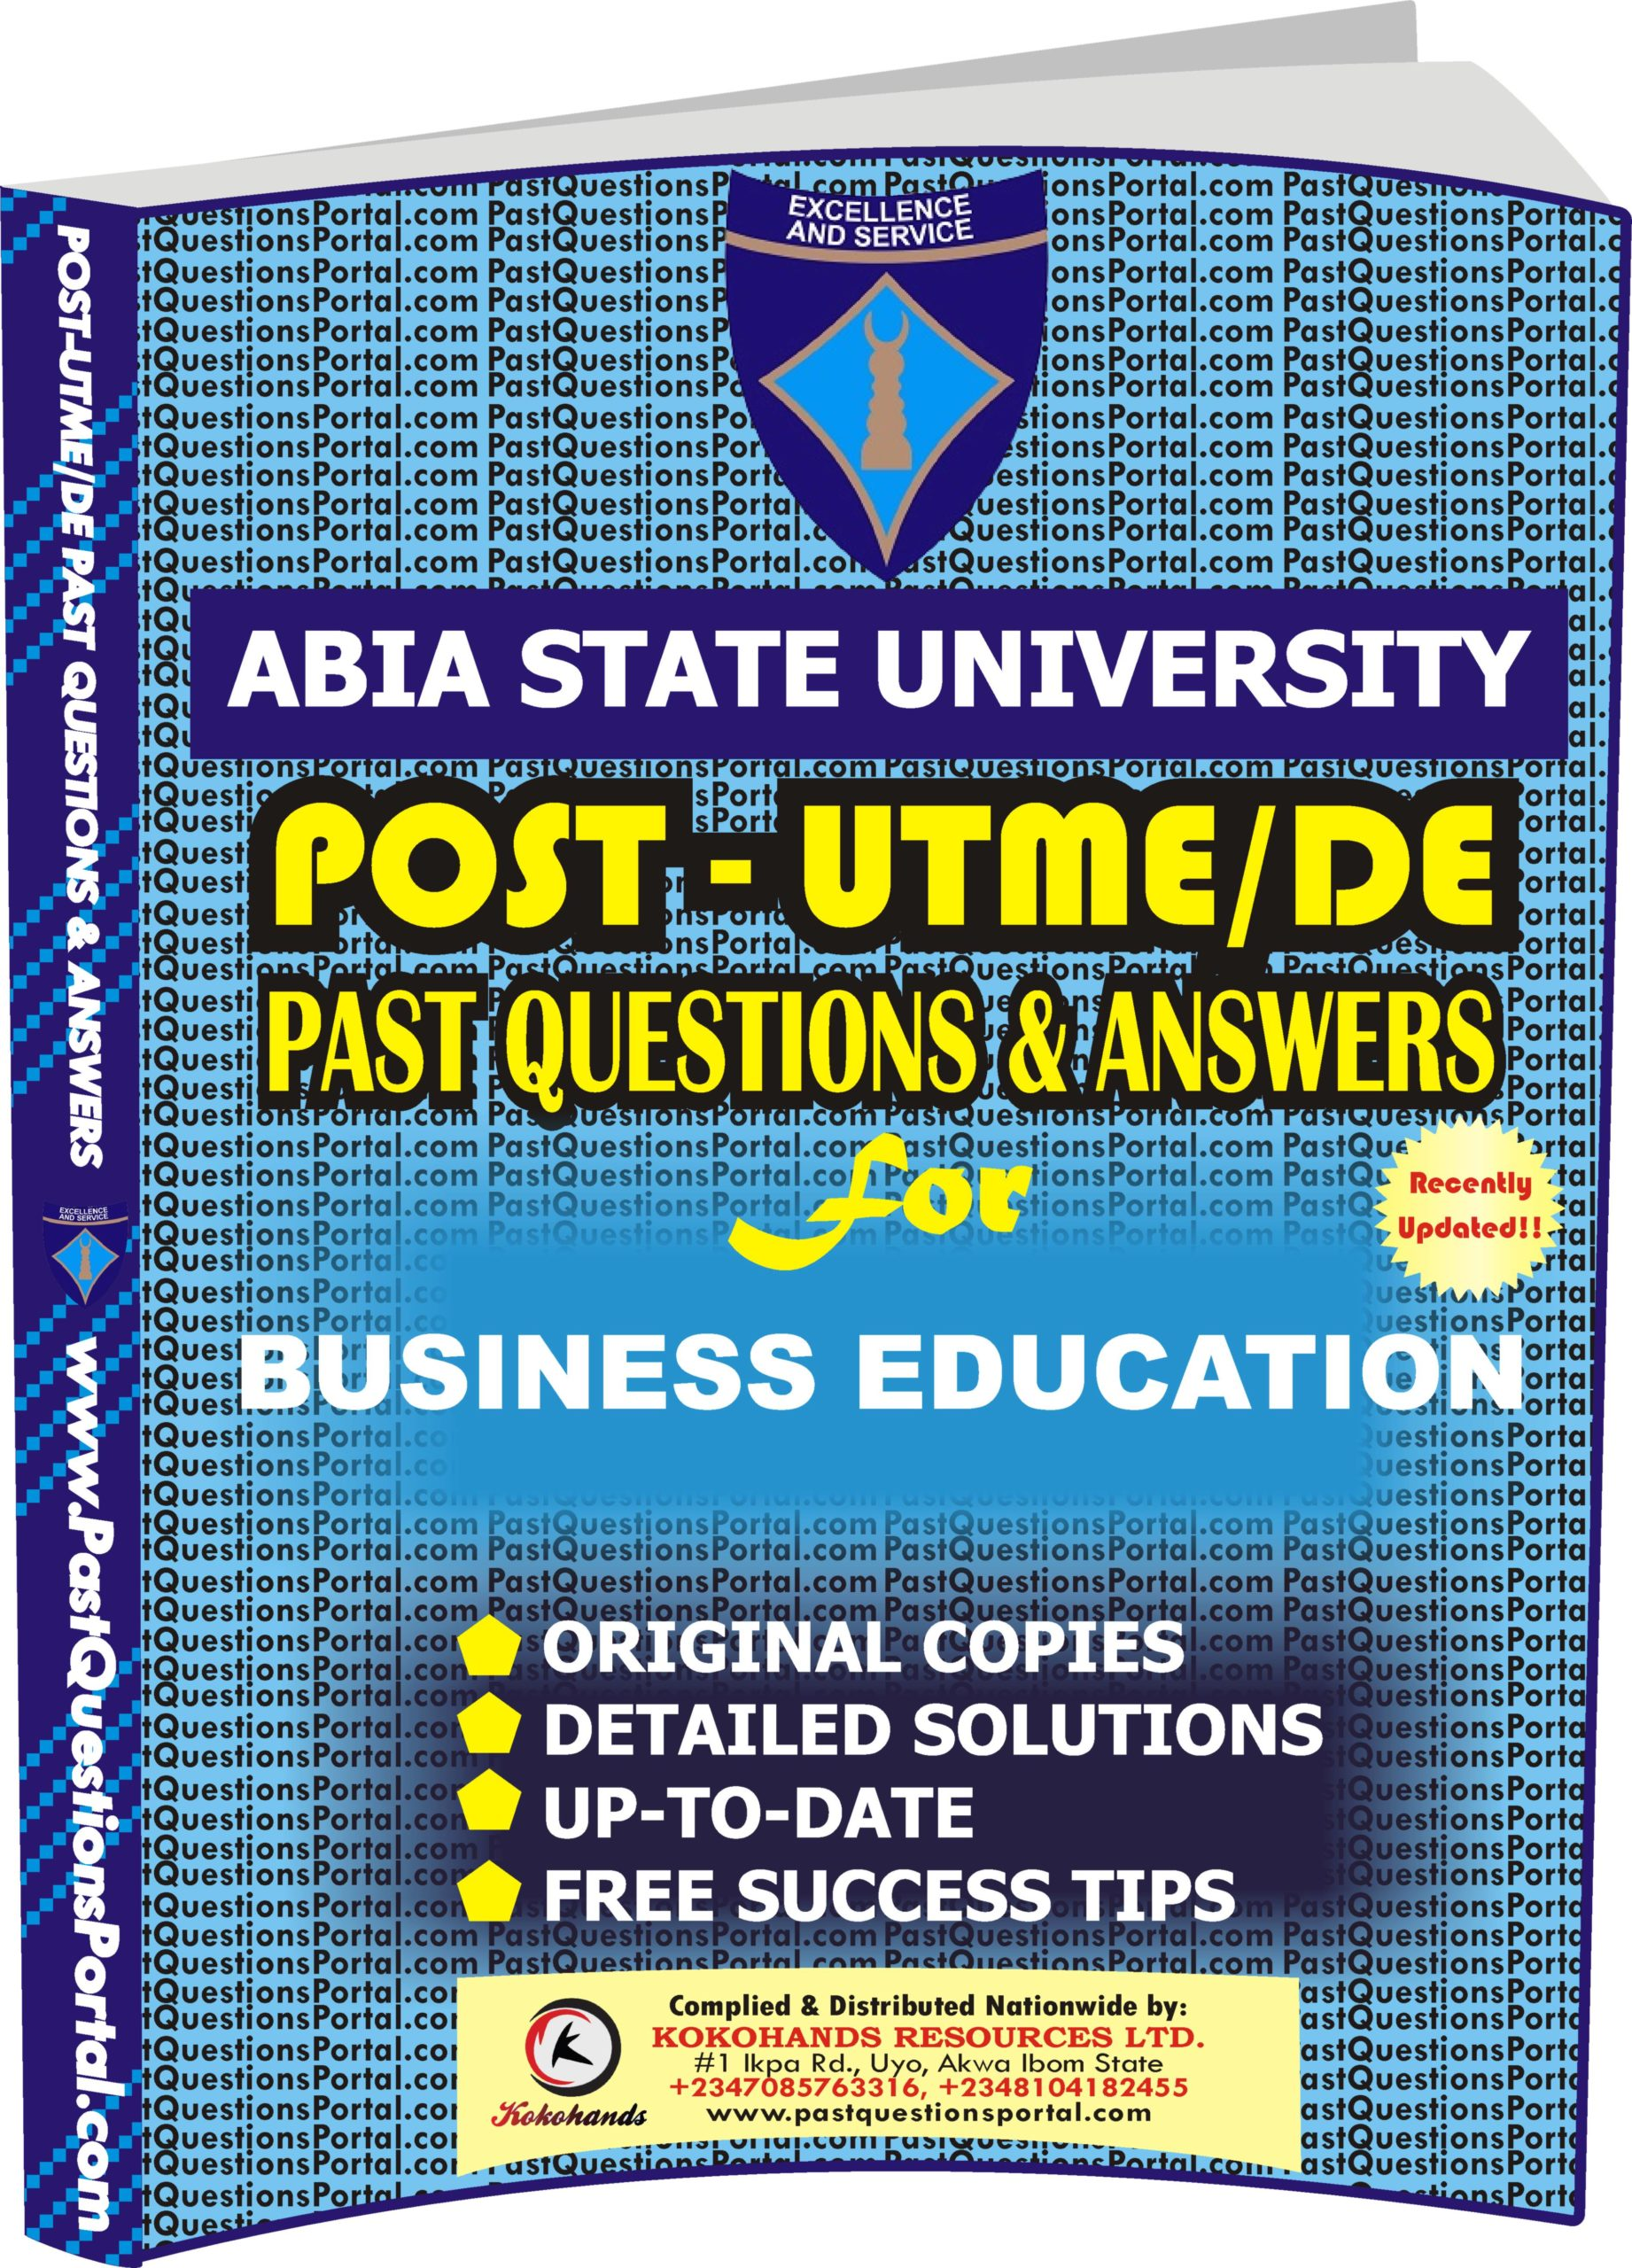 ABSU Post UTME Past Questions for BUSINESS EDUCATION